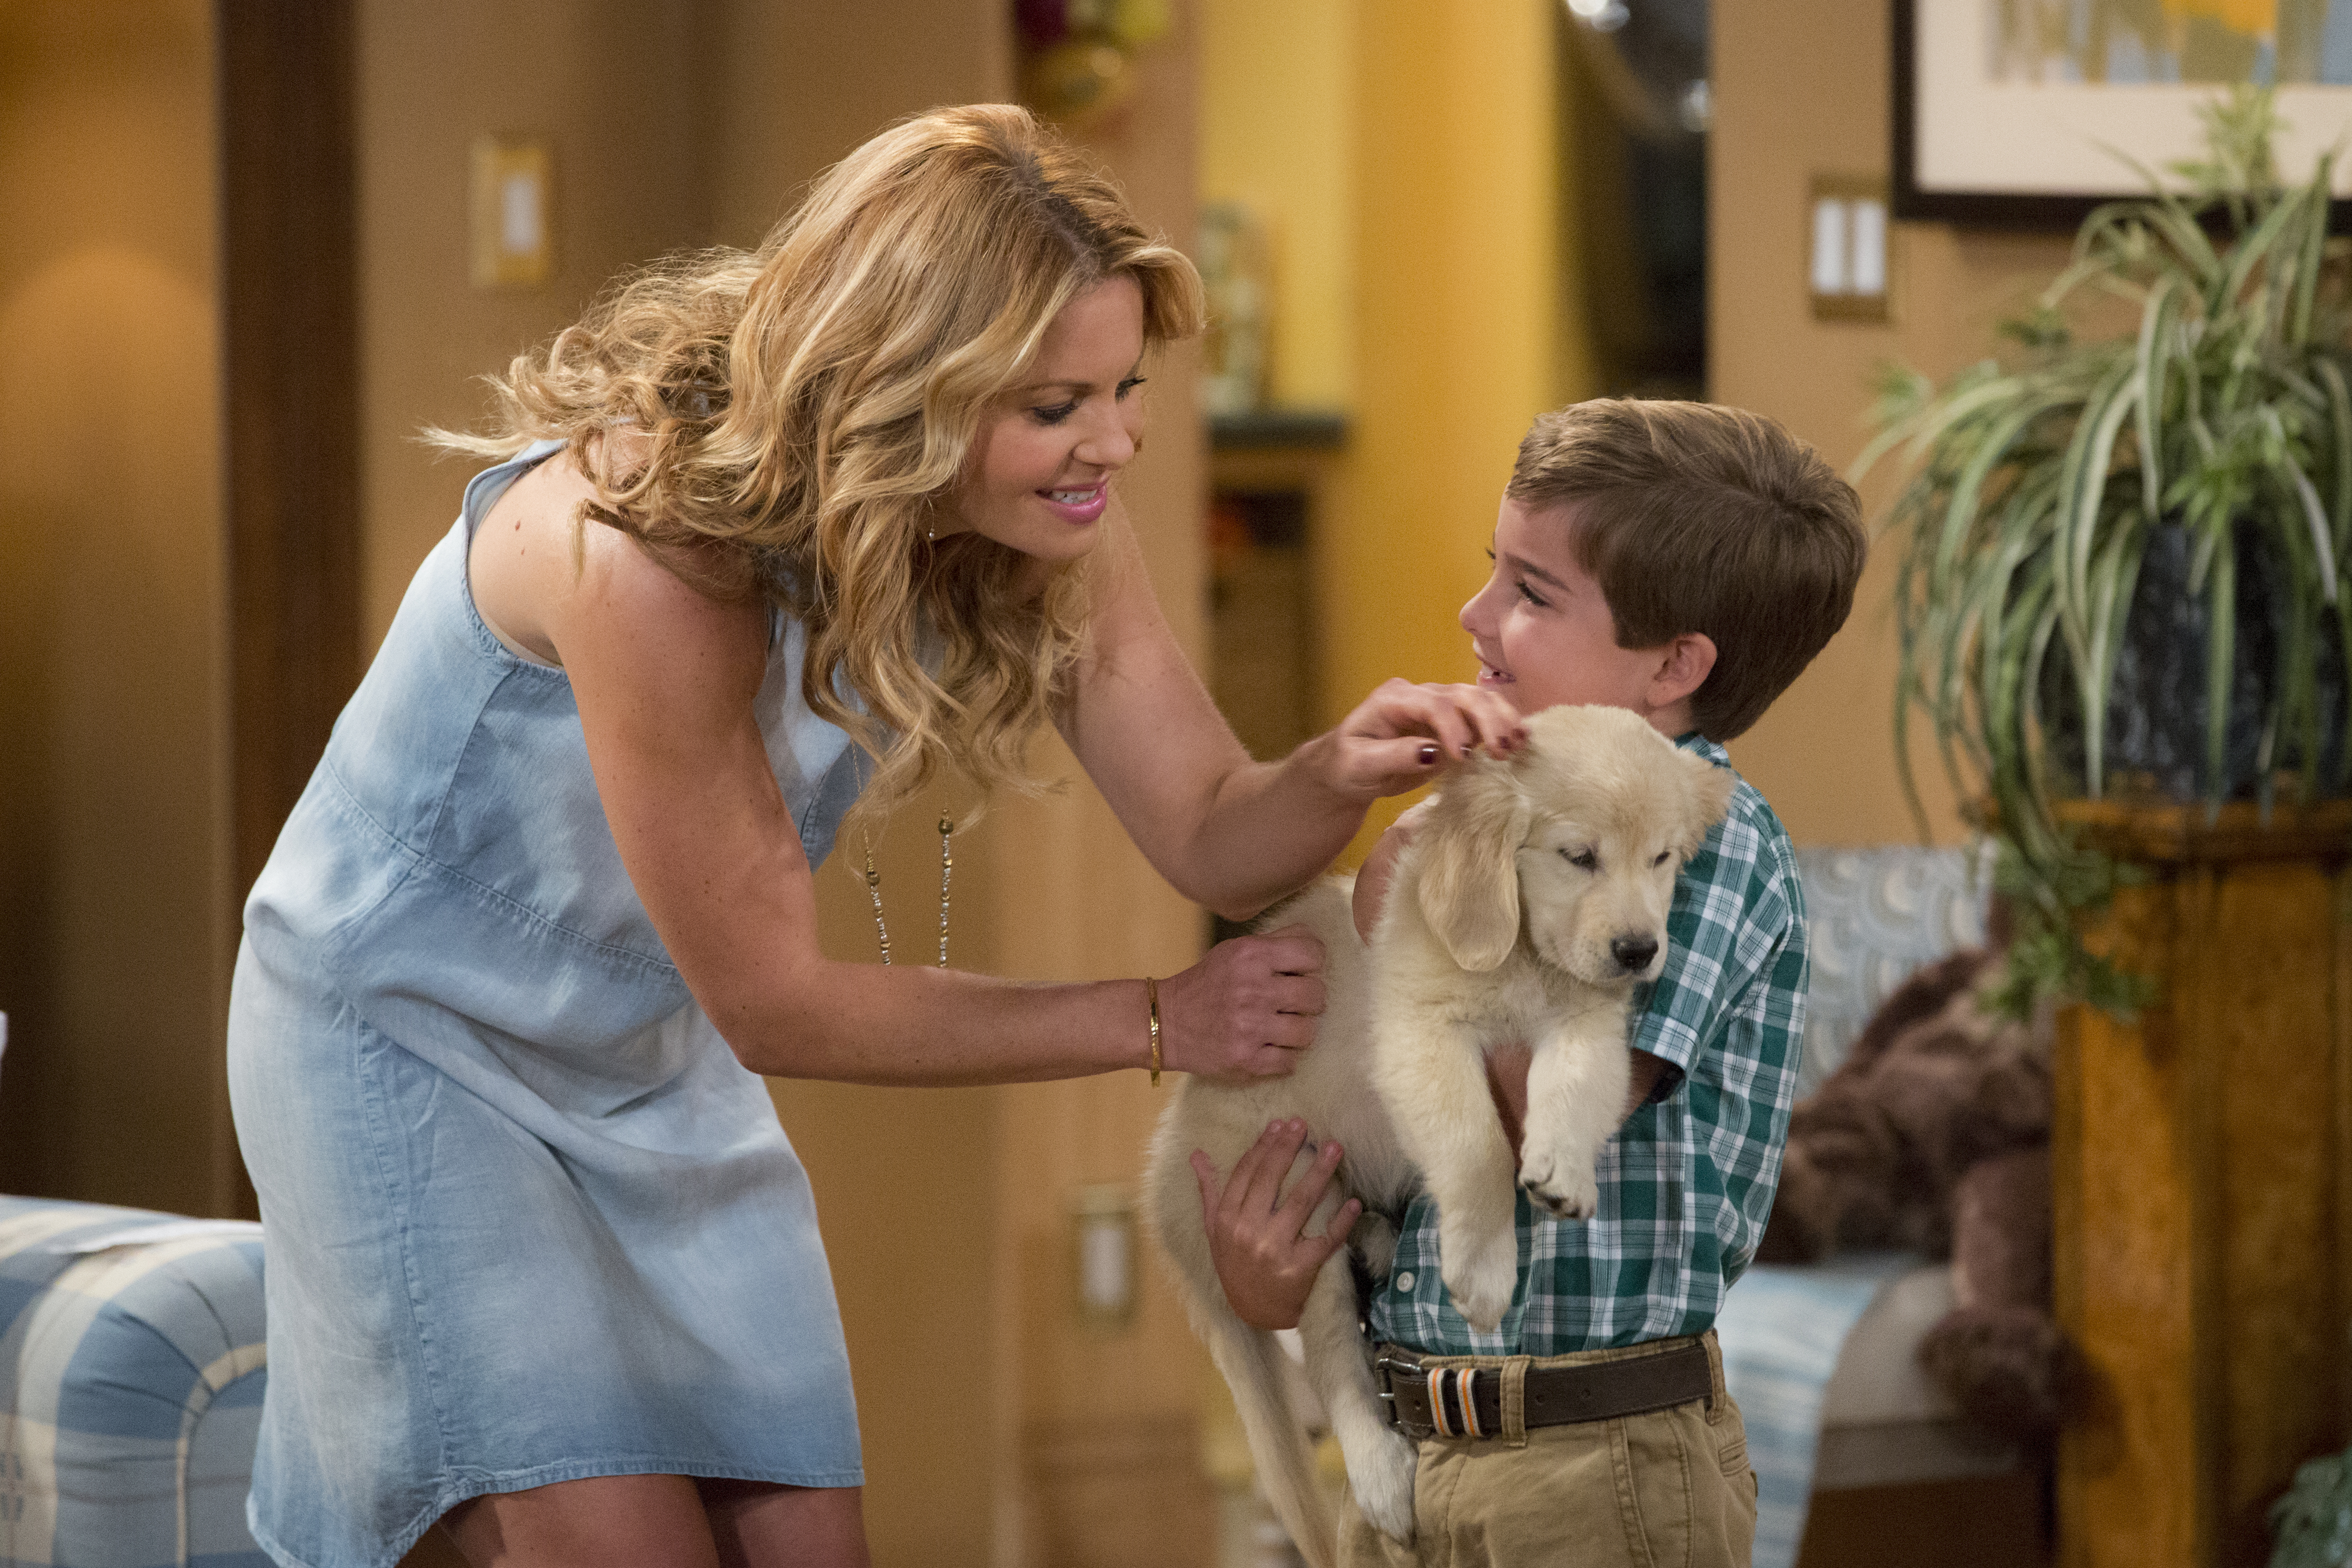 Candace Cameron Bure on her 'Fuller House' alter ego D.J., a veterinarian: